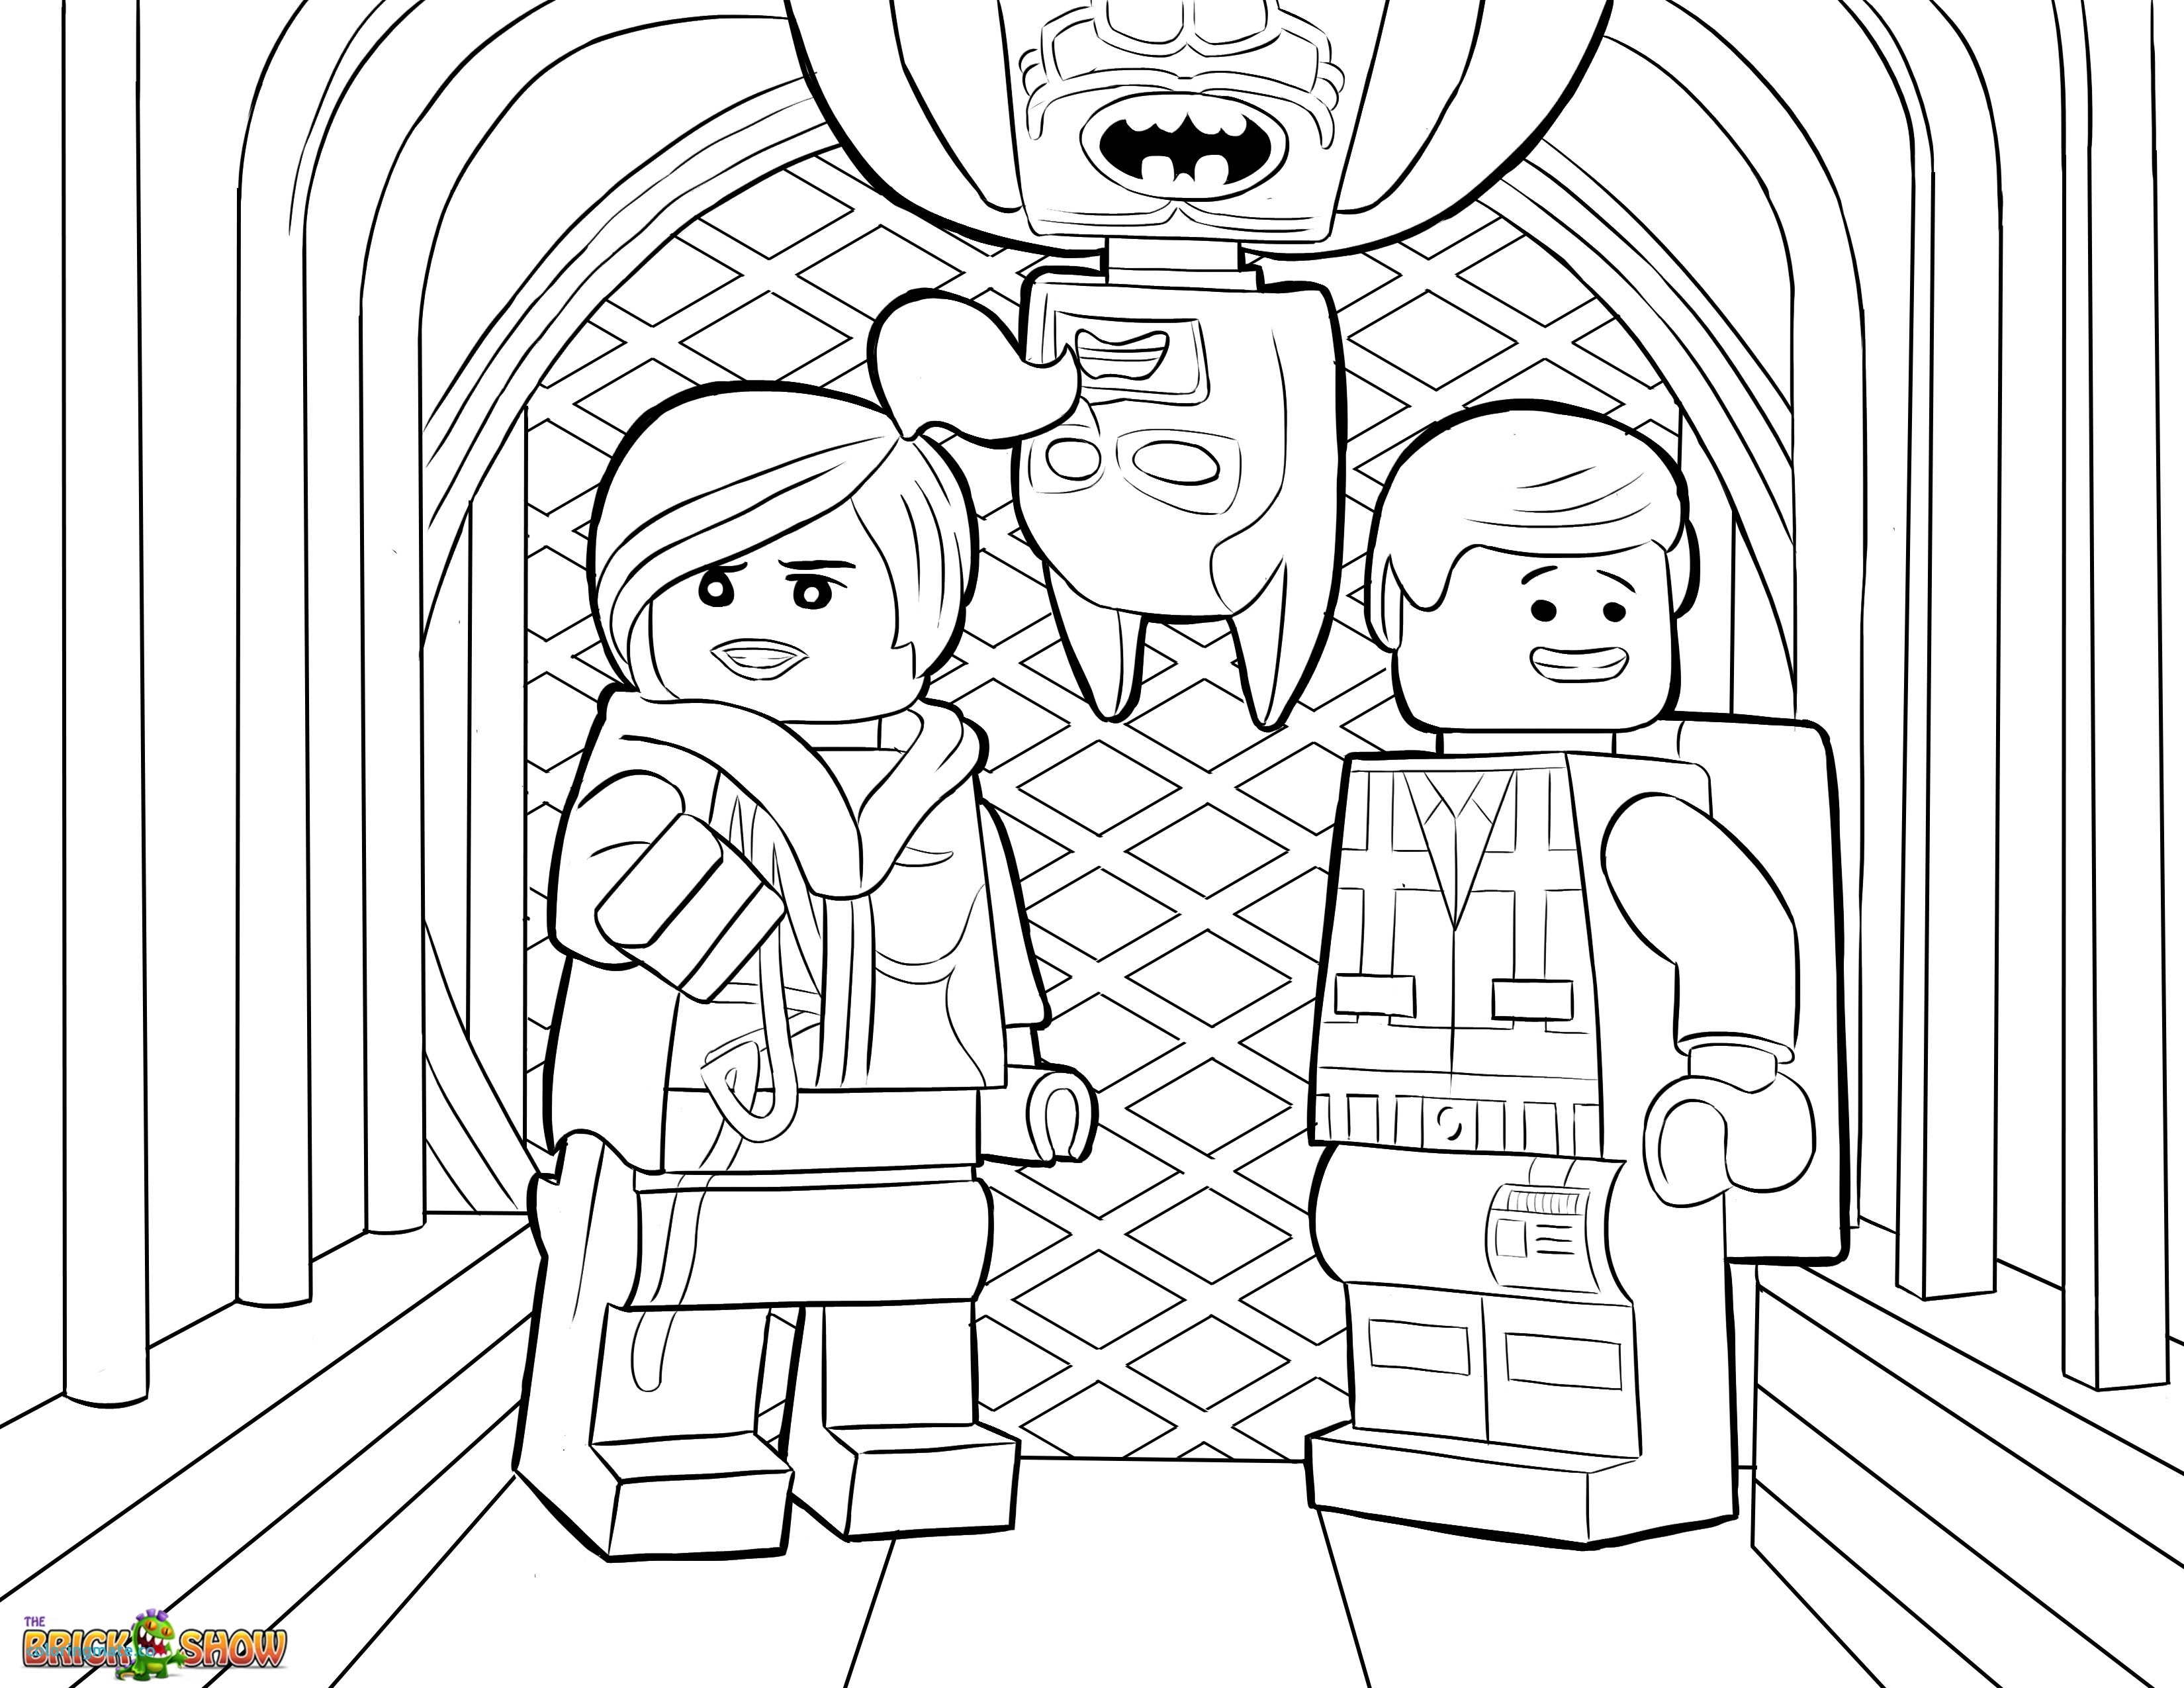 3300x2550 Lego Coloring Page Beautiful Lego Juniors Race Car Coloring Page